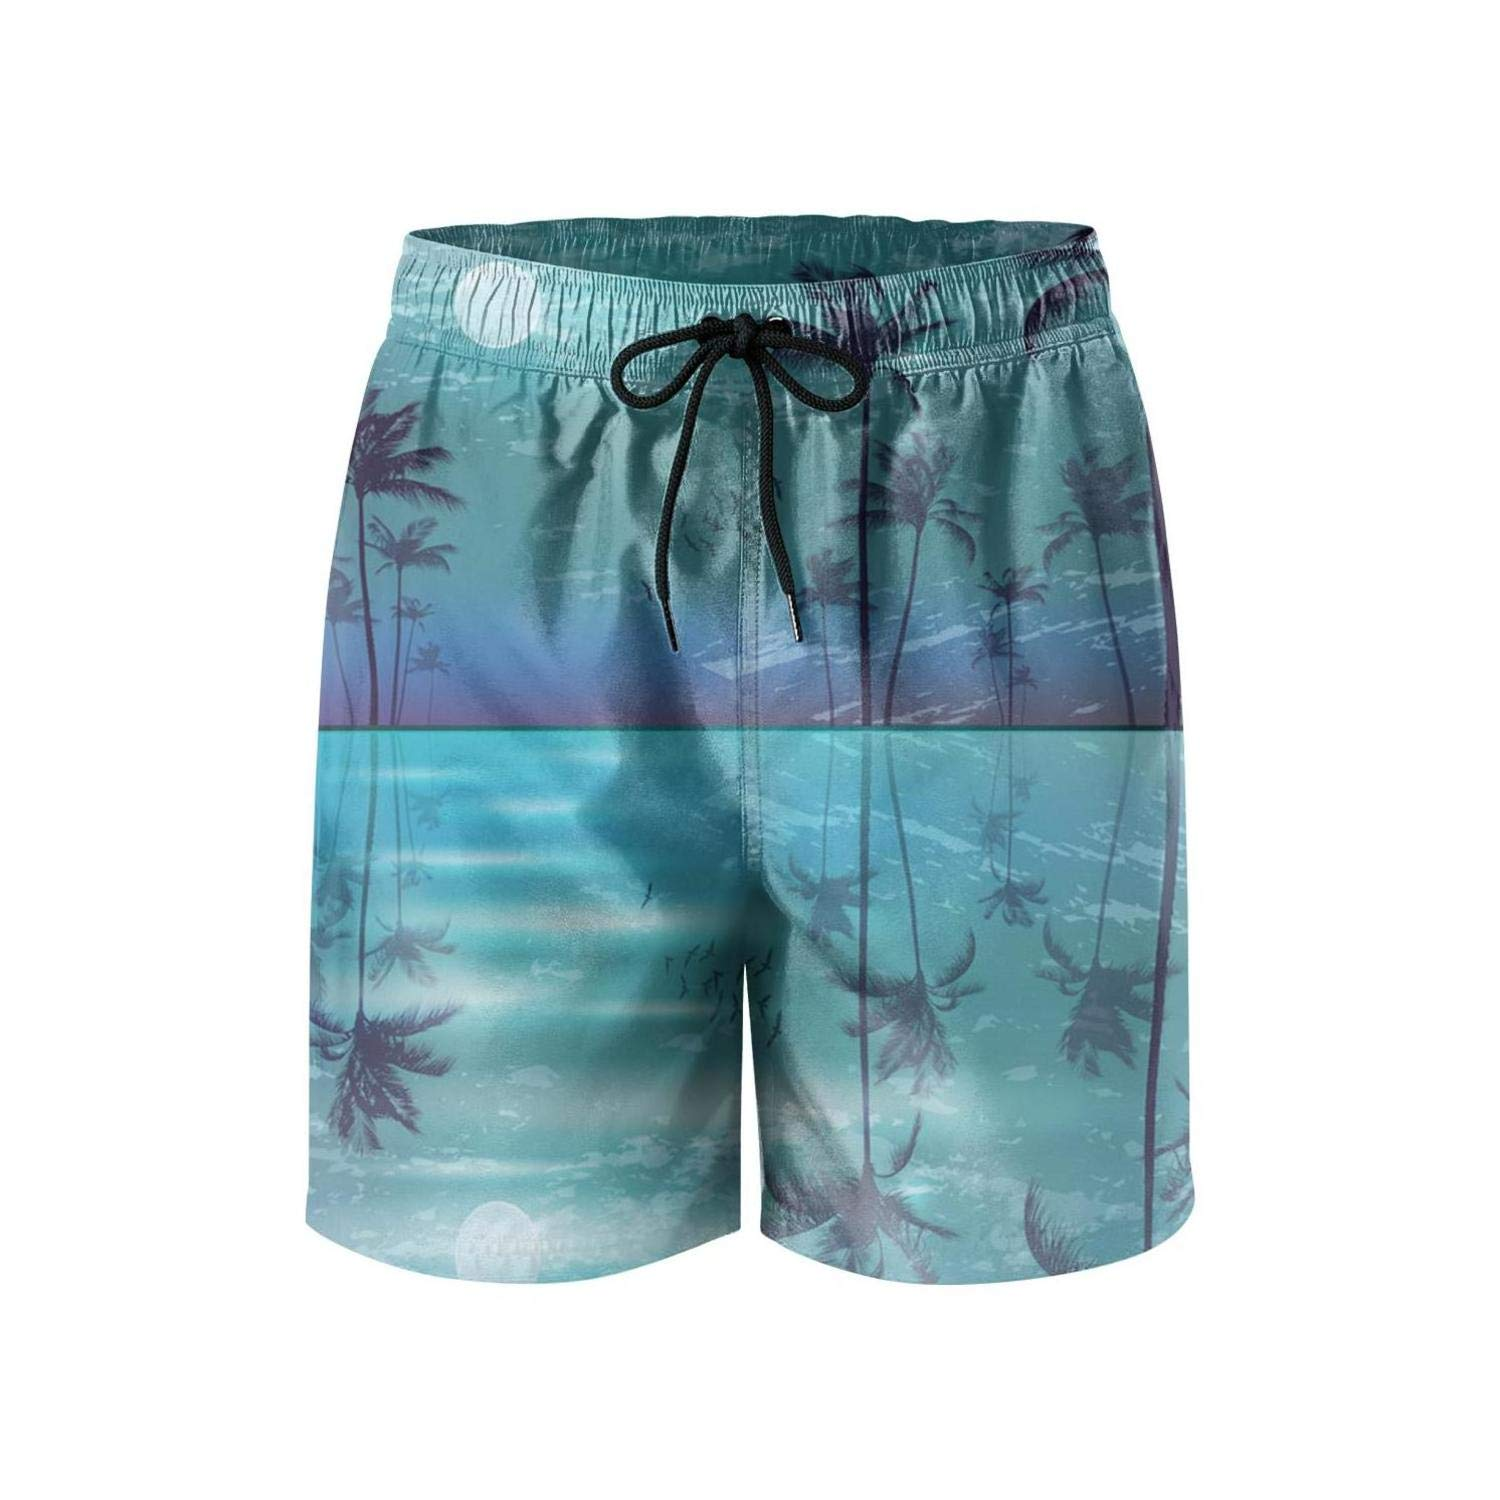 Palm Trees in Moonlight Mens Swim Trunks Quick Dry Holiday Mesh Lining Beach Board Shorts with Drawstring